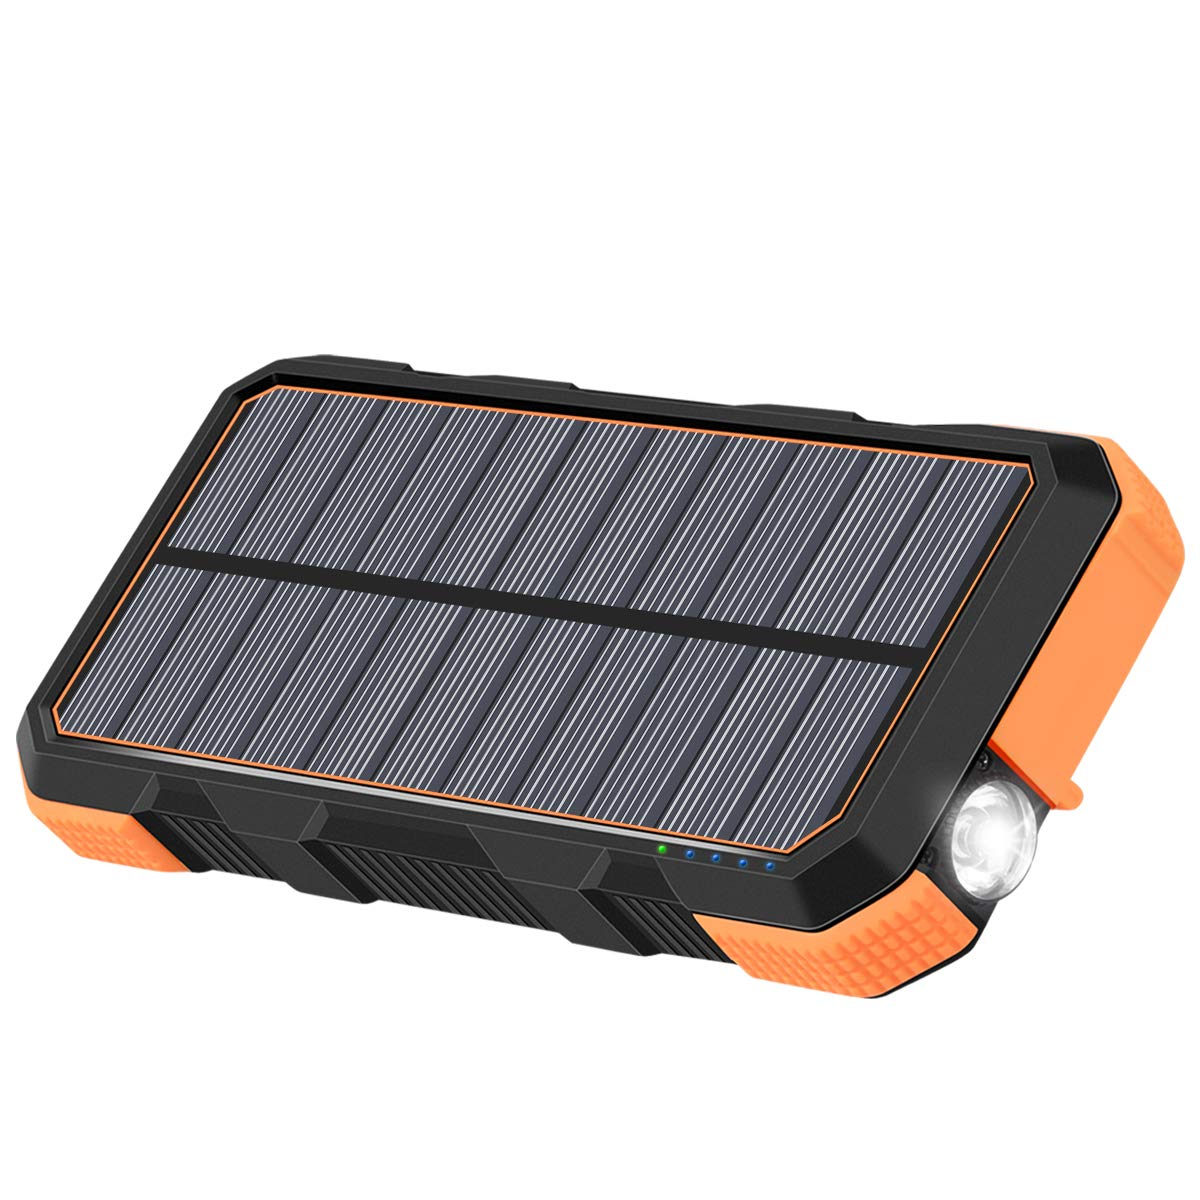 Solar Charger 26800mAh Hiluckey 18W Power Bank with 3.0A Outputs USB C Waterproof Battery Pack for Smartphones, Tablets, MacBook by Hiluckey